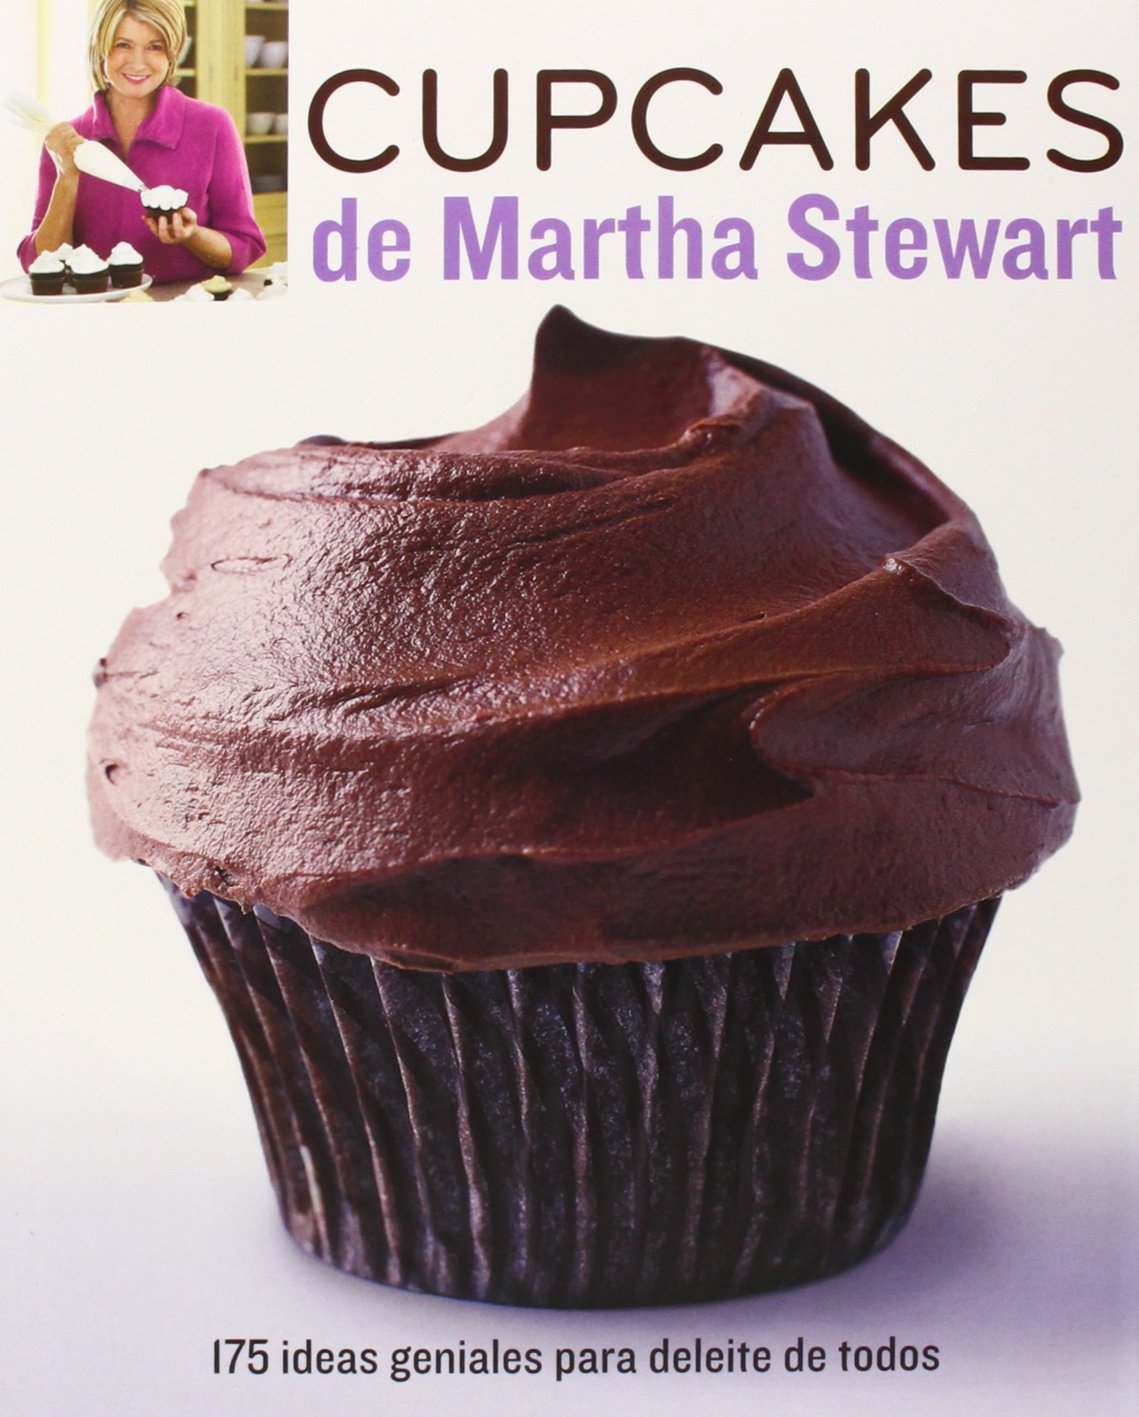 Cupcakes de Martha Stewart (Spanish Edition) by Lectorum Publications